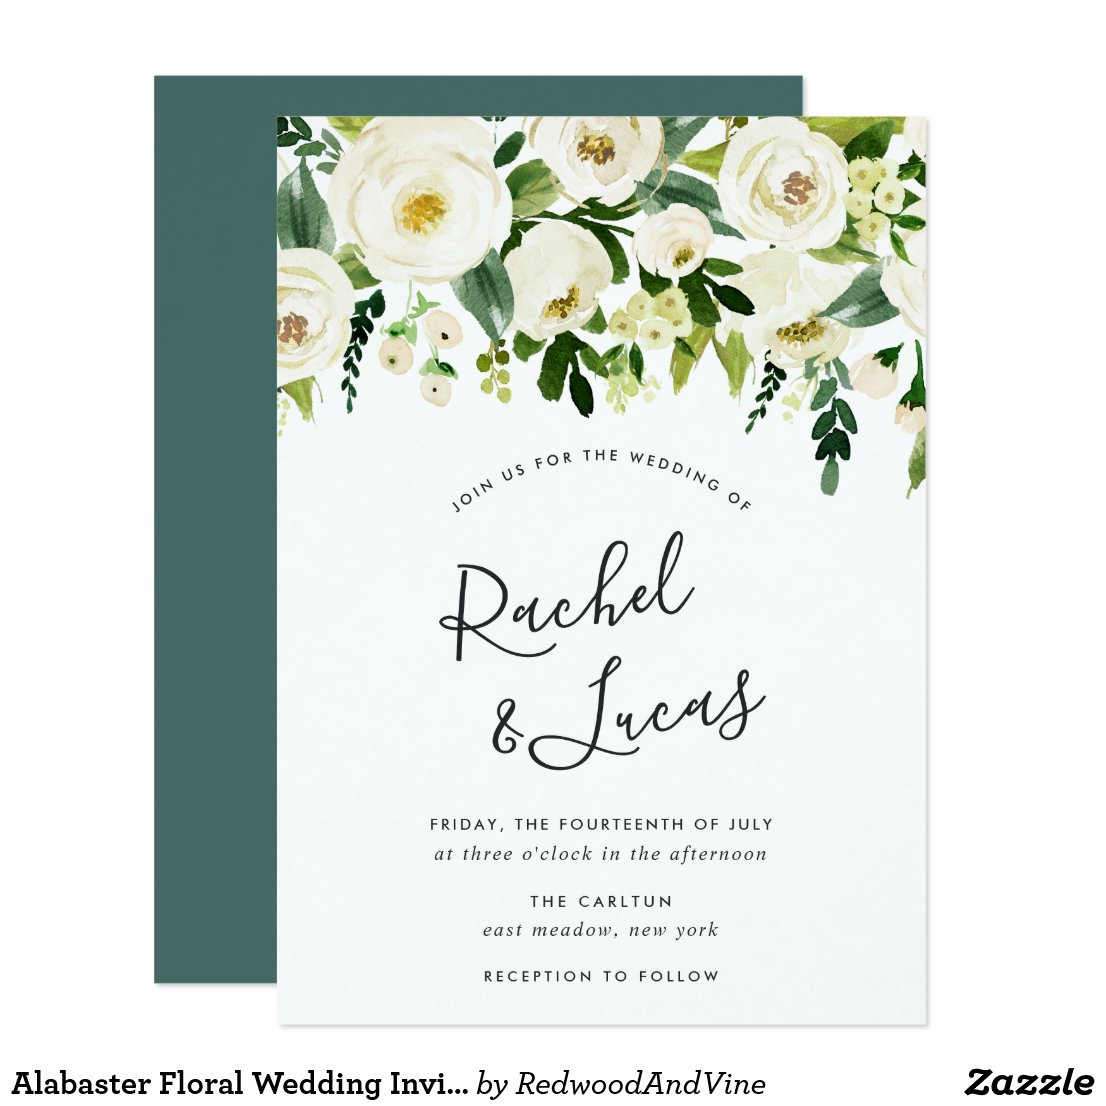 Click to get wedding invitations, bridal shower stuff, and related merchandise.